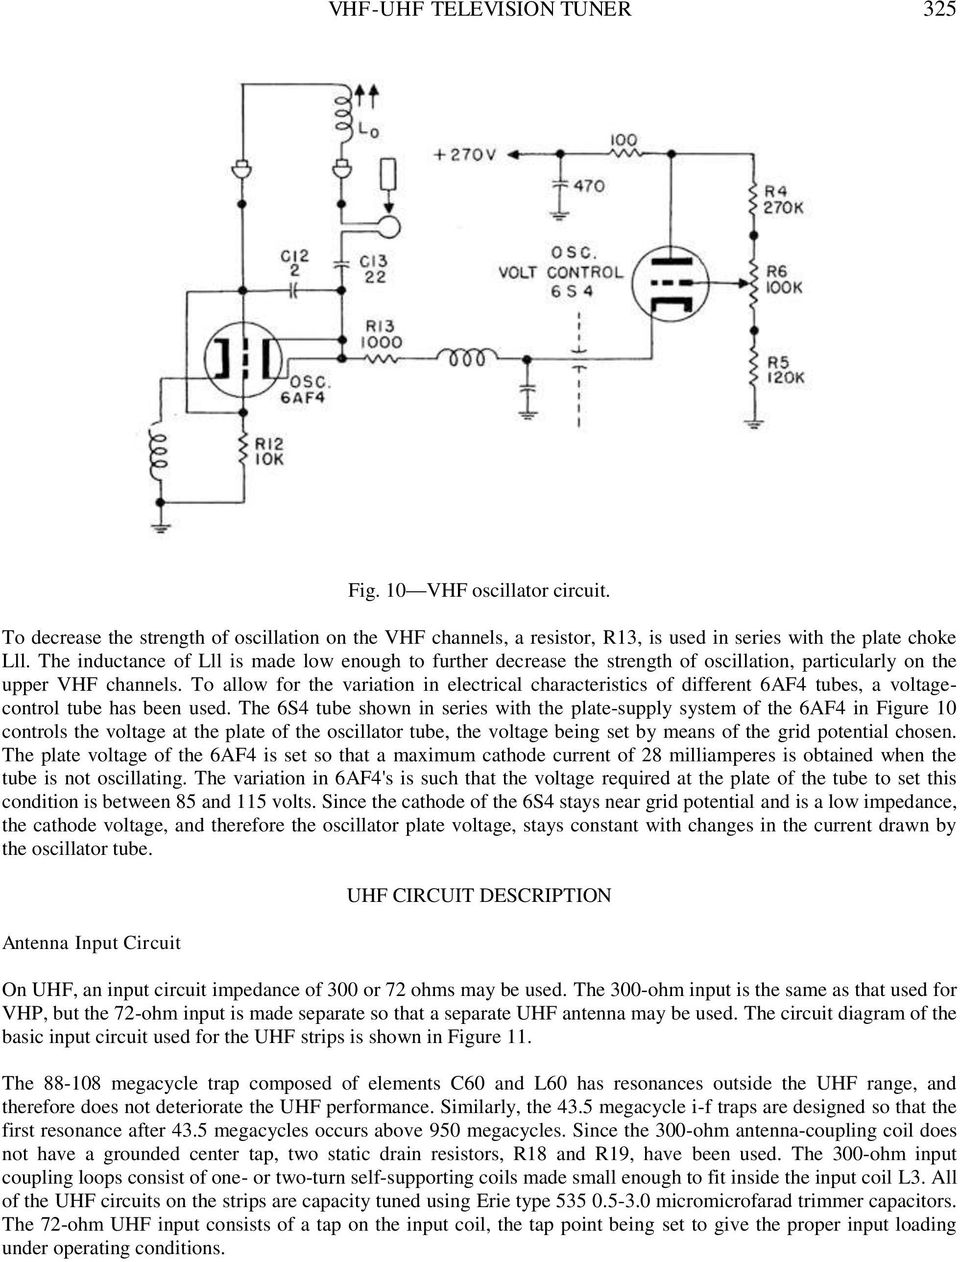 A Vhf Uhf Television Turret Tuner Pdf Antenna Wiring Diagram To Allow For The Variation In Electrical Characteristics Of Different 6af4 Tubes Voltagecontrol Tube